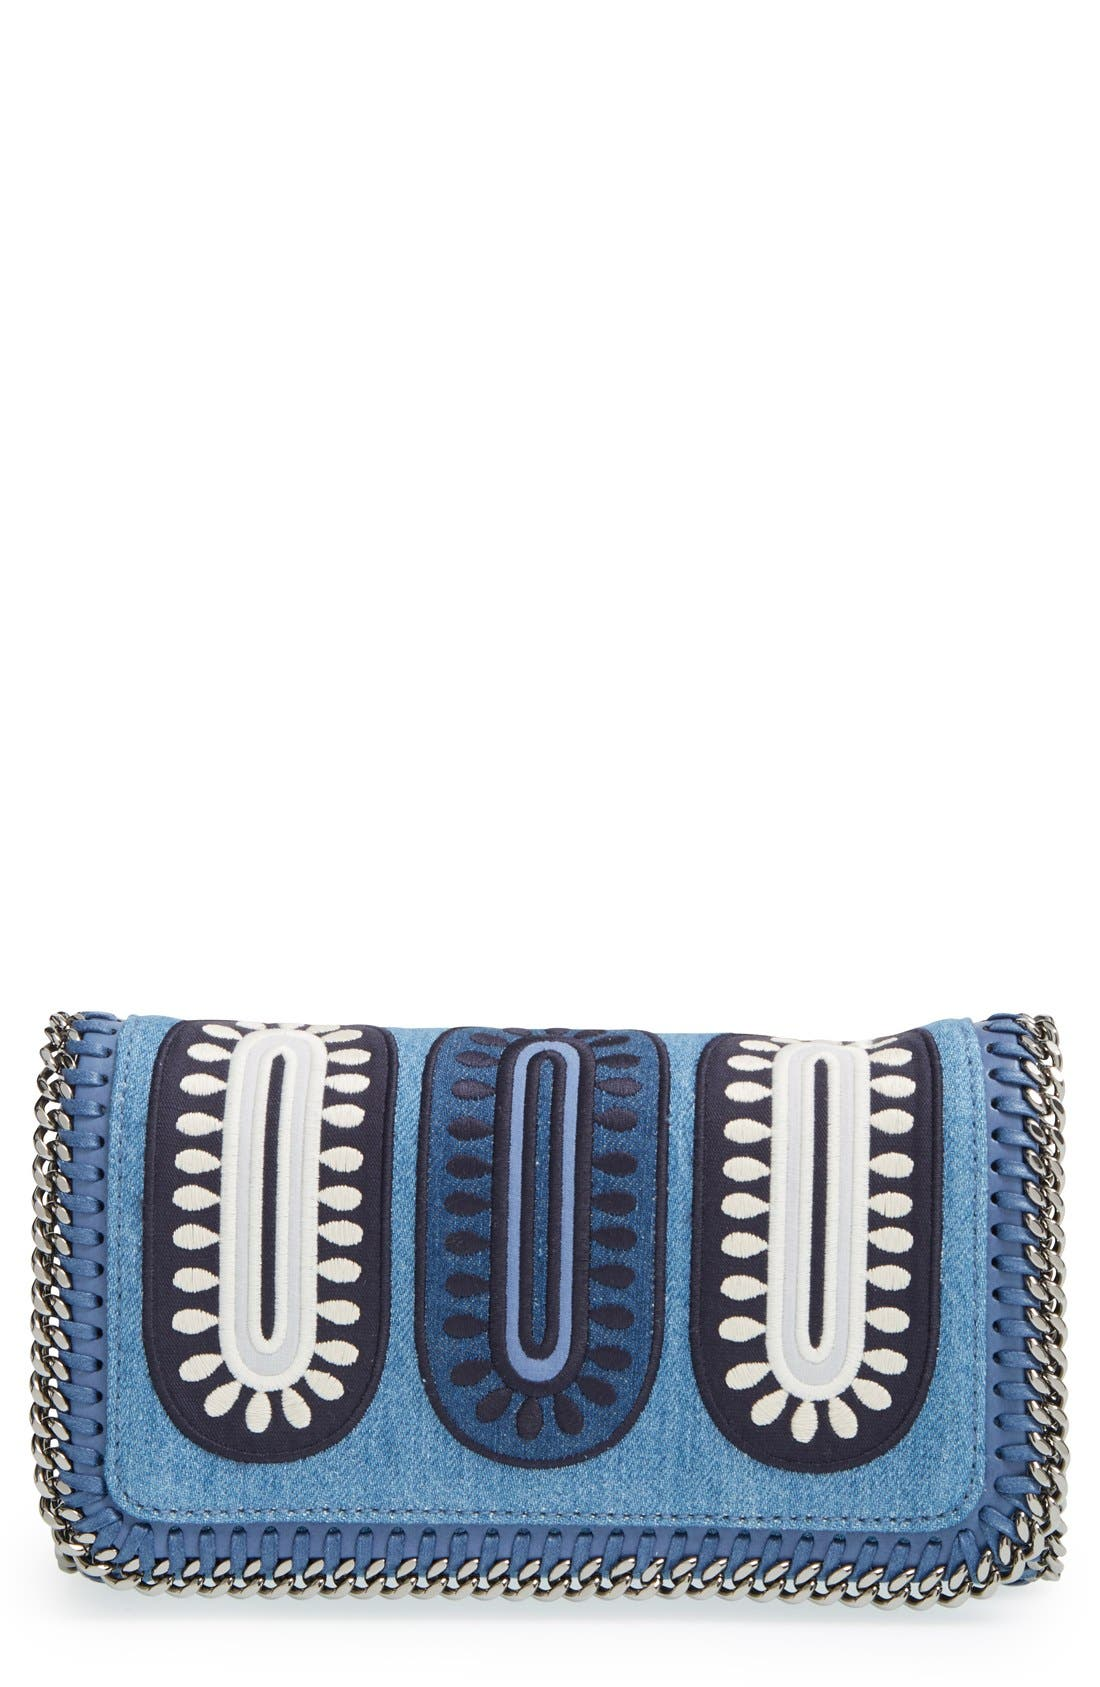 Alternate Image 1 Selected - Stella McCartney 'Falabella - Adorned' Denim Crossbody Bag